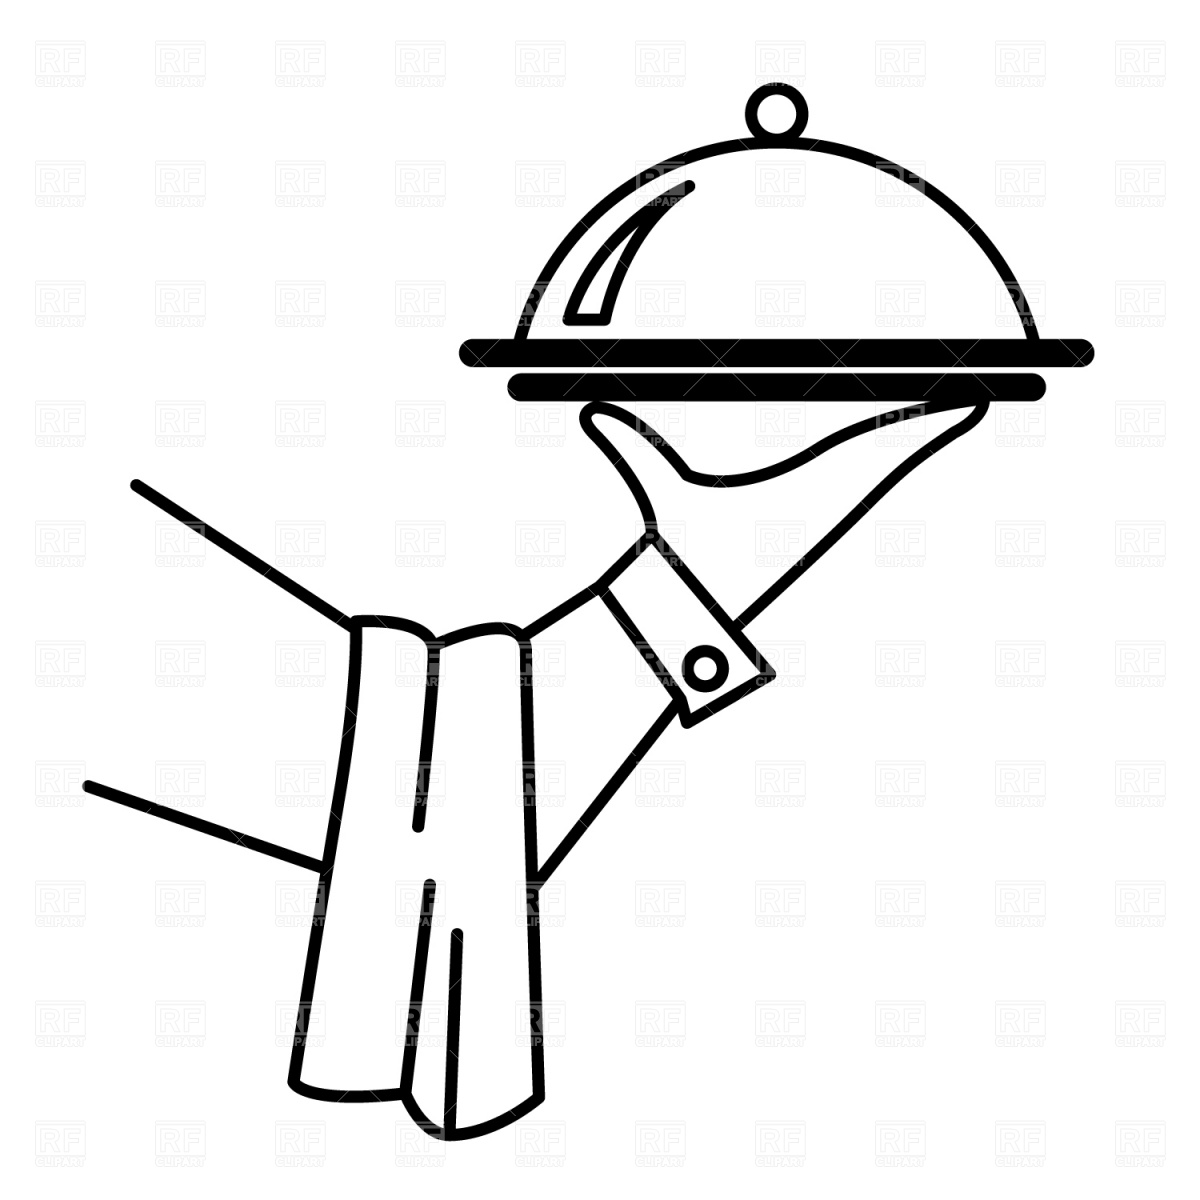 Waiter S Hand With Tray Download Royalty Free Vector Clipart  Eps